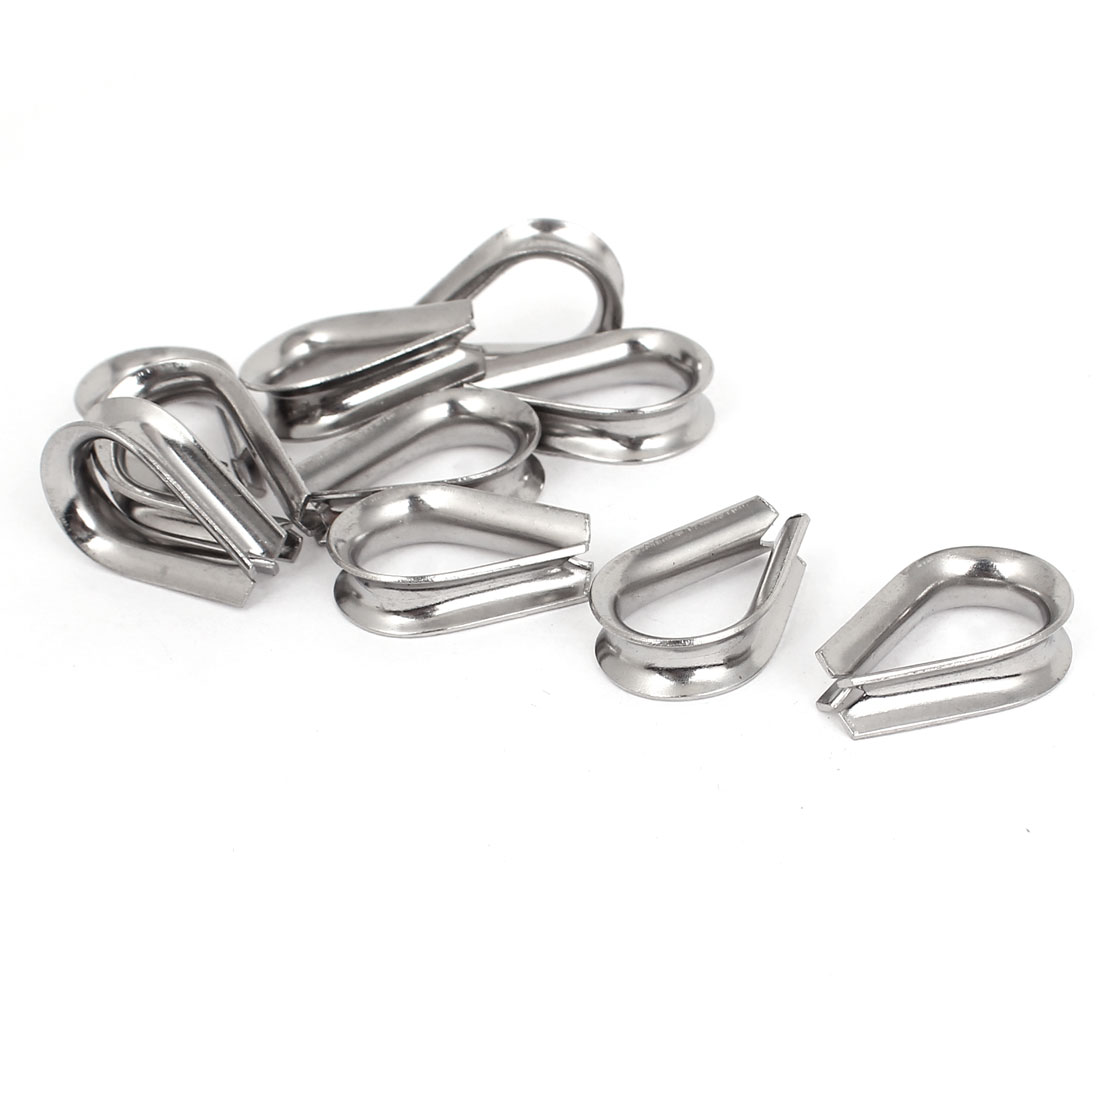 "Stainless Steel 5mm 3/16"" Standard Wire Rope Cable Thimbles Rigging Tool 10pcs"